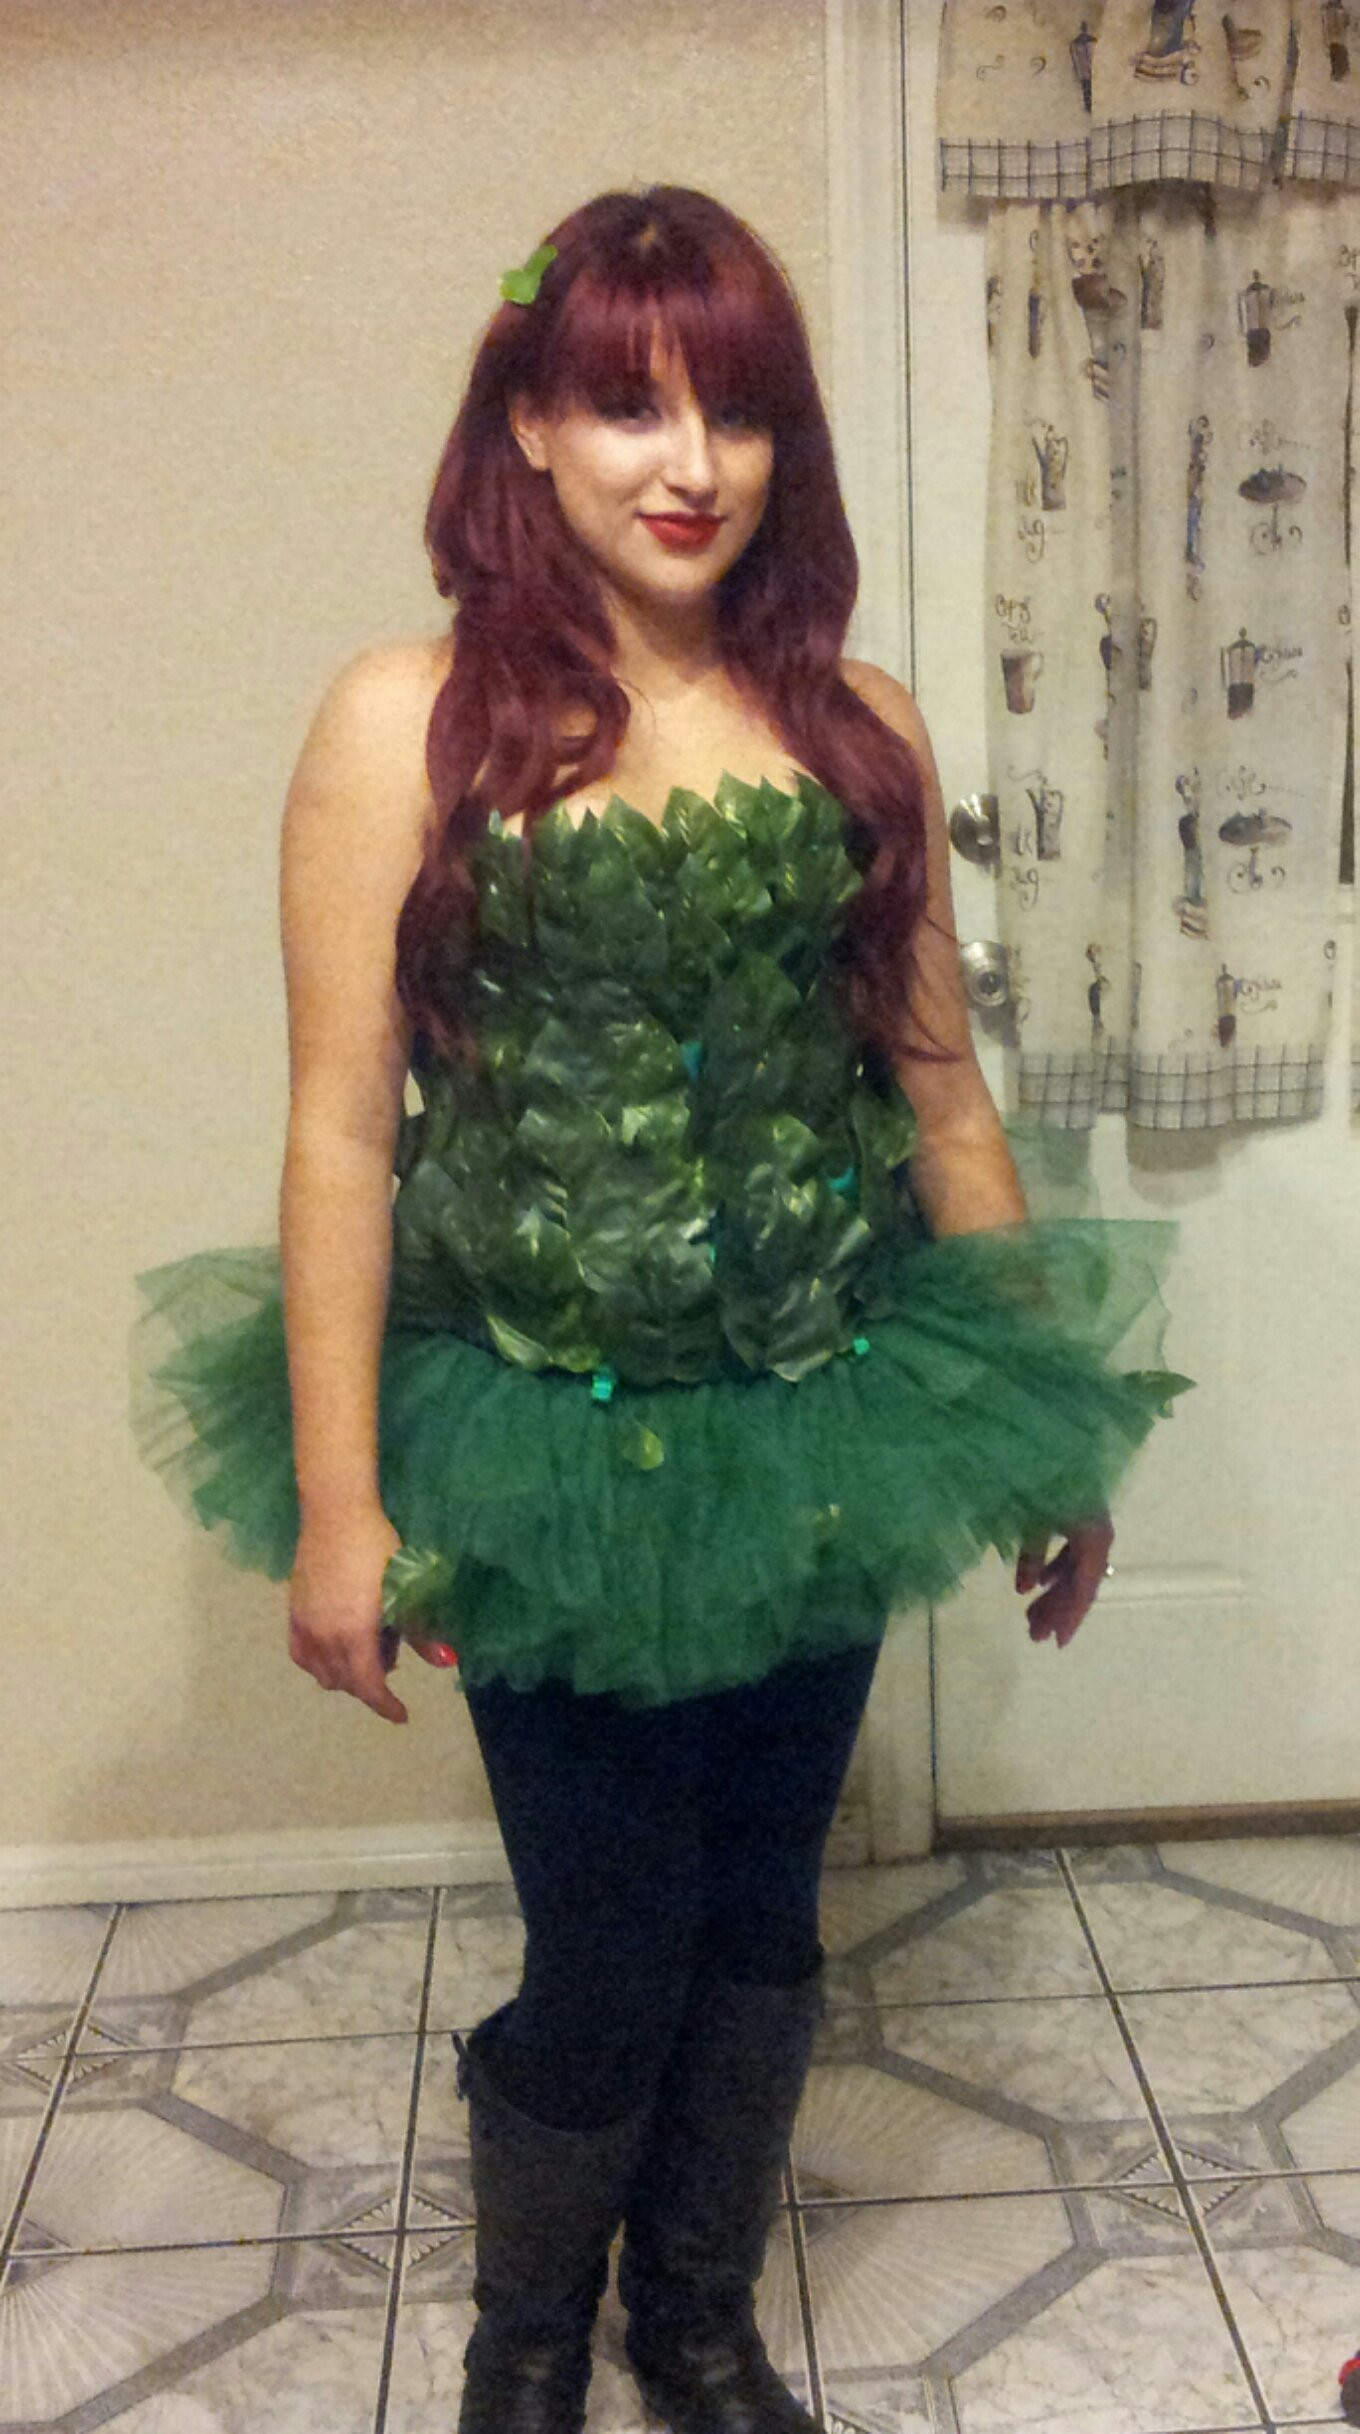 Best ideas about DIY Poison Ivy Costume . Save or Pin How to make a Poison Ivy Halloween Costume Now.